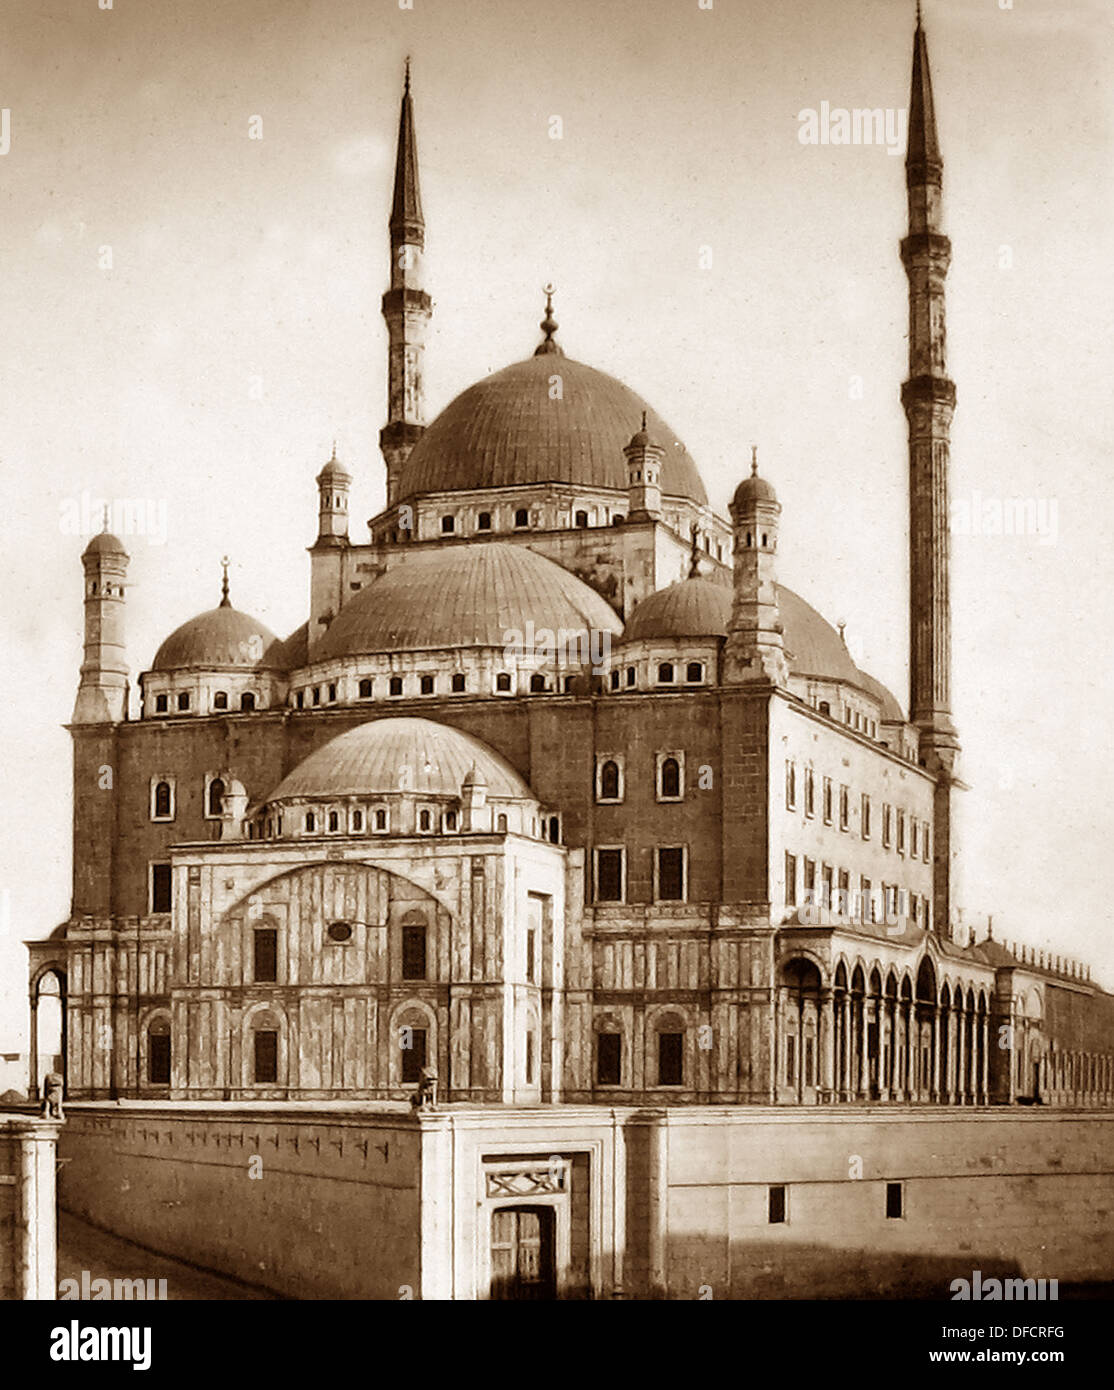 Egypt Mosque of Muhammad Ali probably 1870s - Stock Image